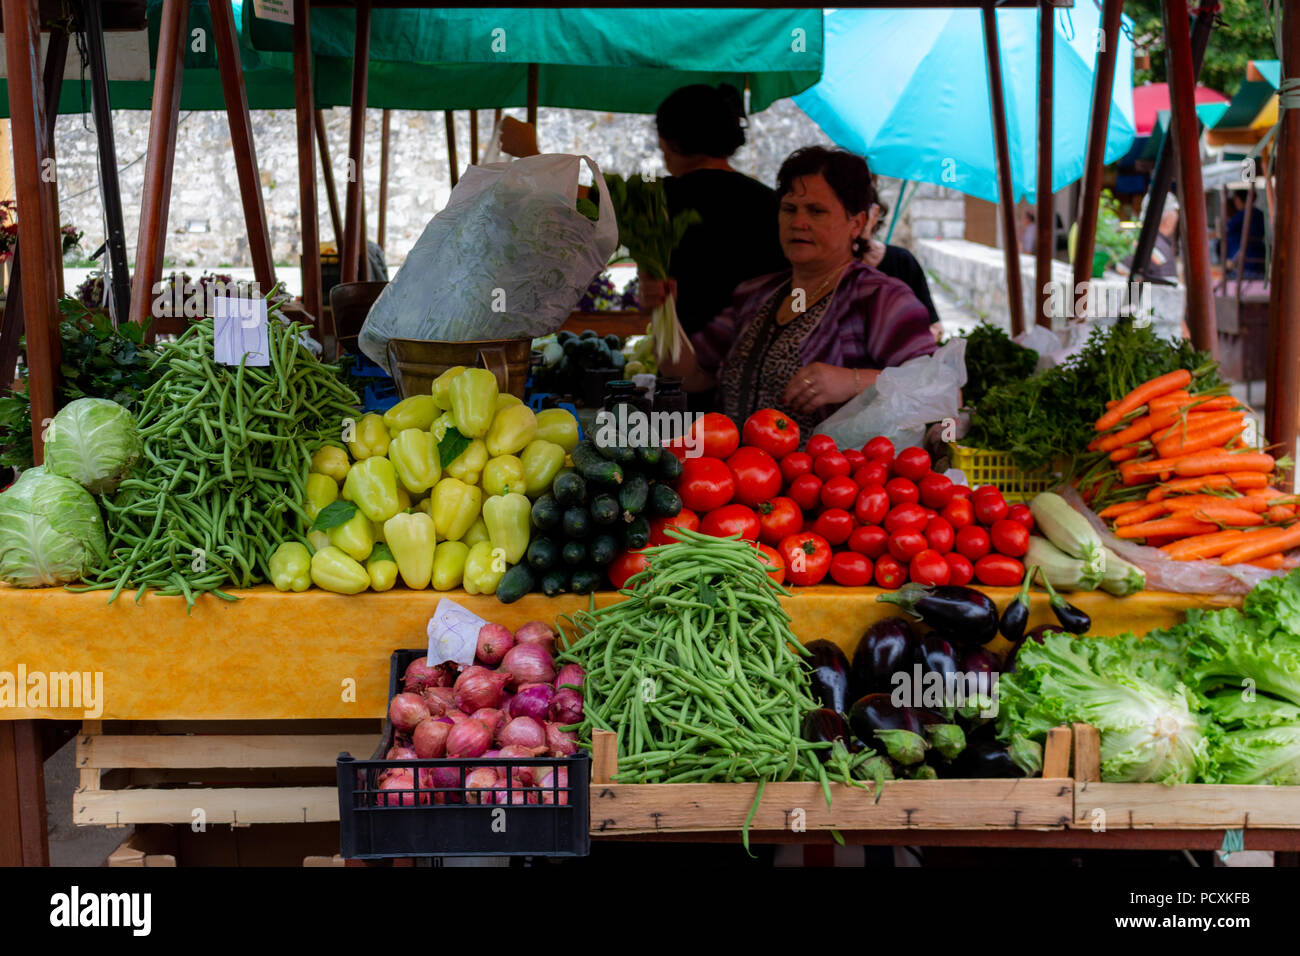 Zadar, Croatia - July 23, 2018: Senior lady selling fruits a vegetables in the market of Zadar old town - Stock Image